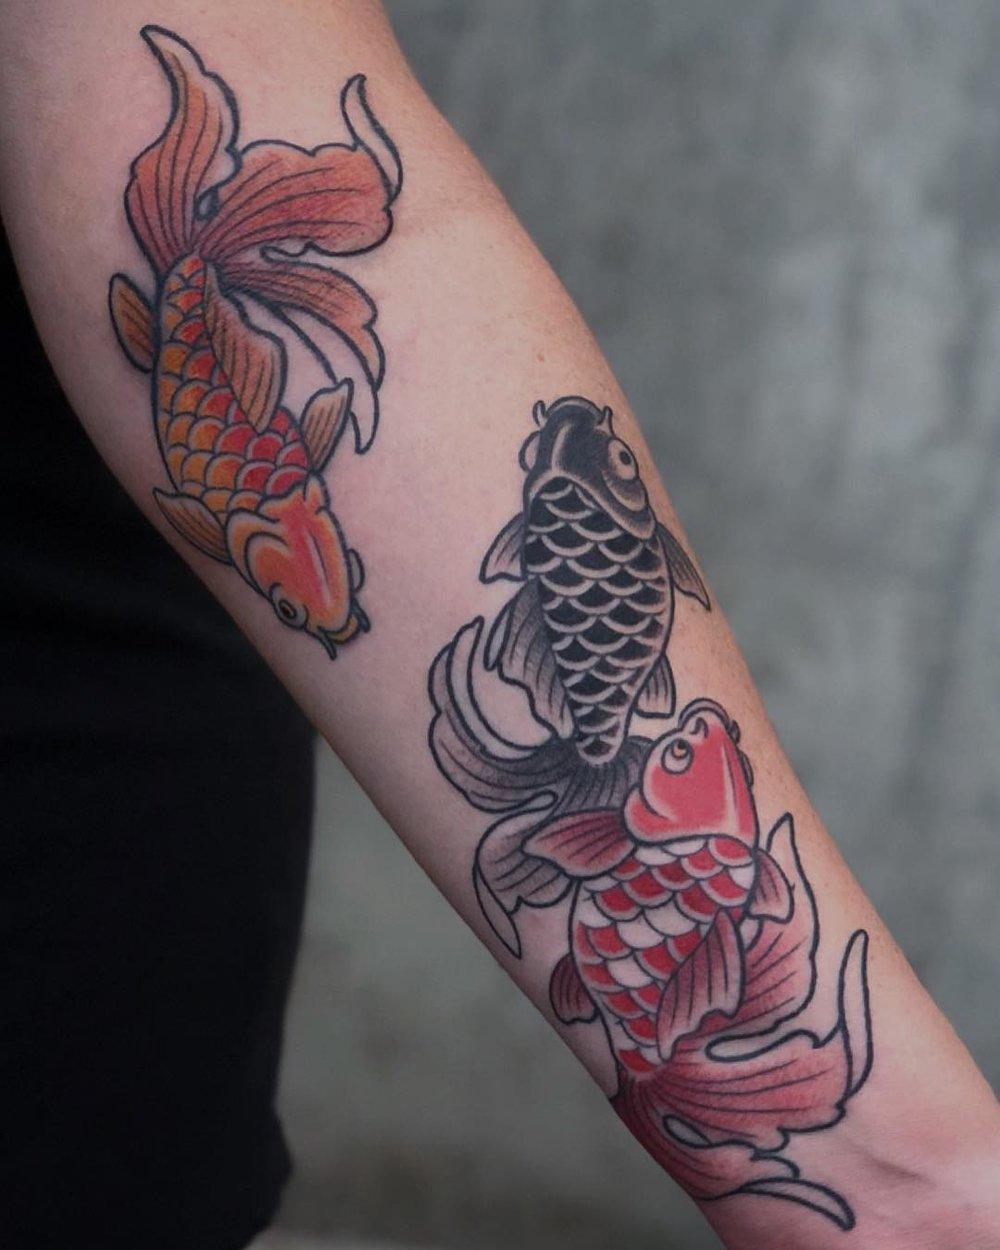 cody-philpott-japonese-tattoo-fish.jpg